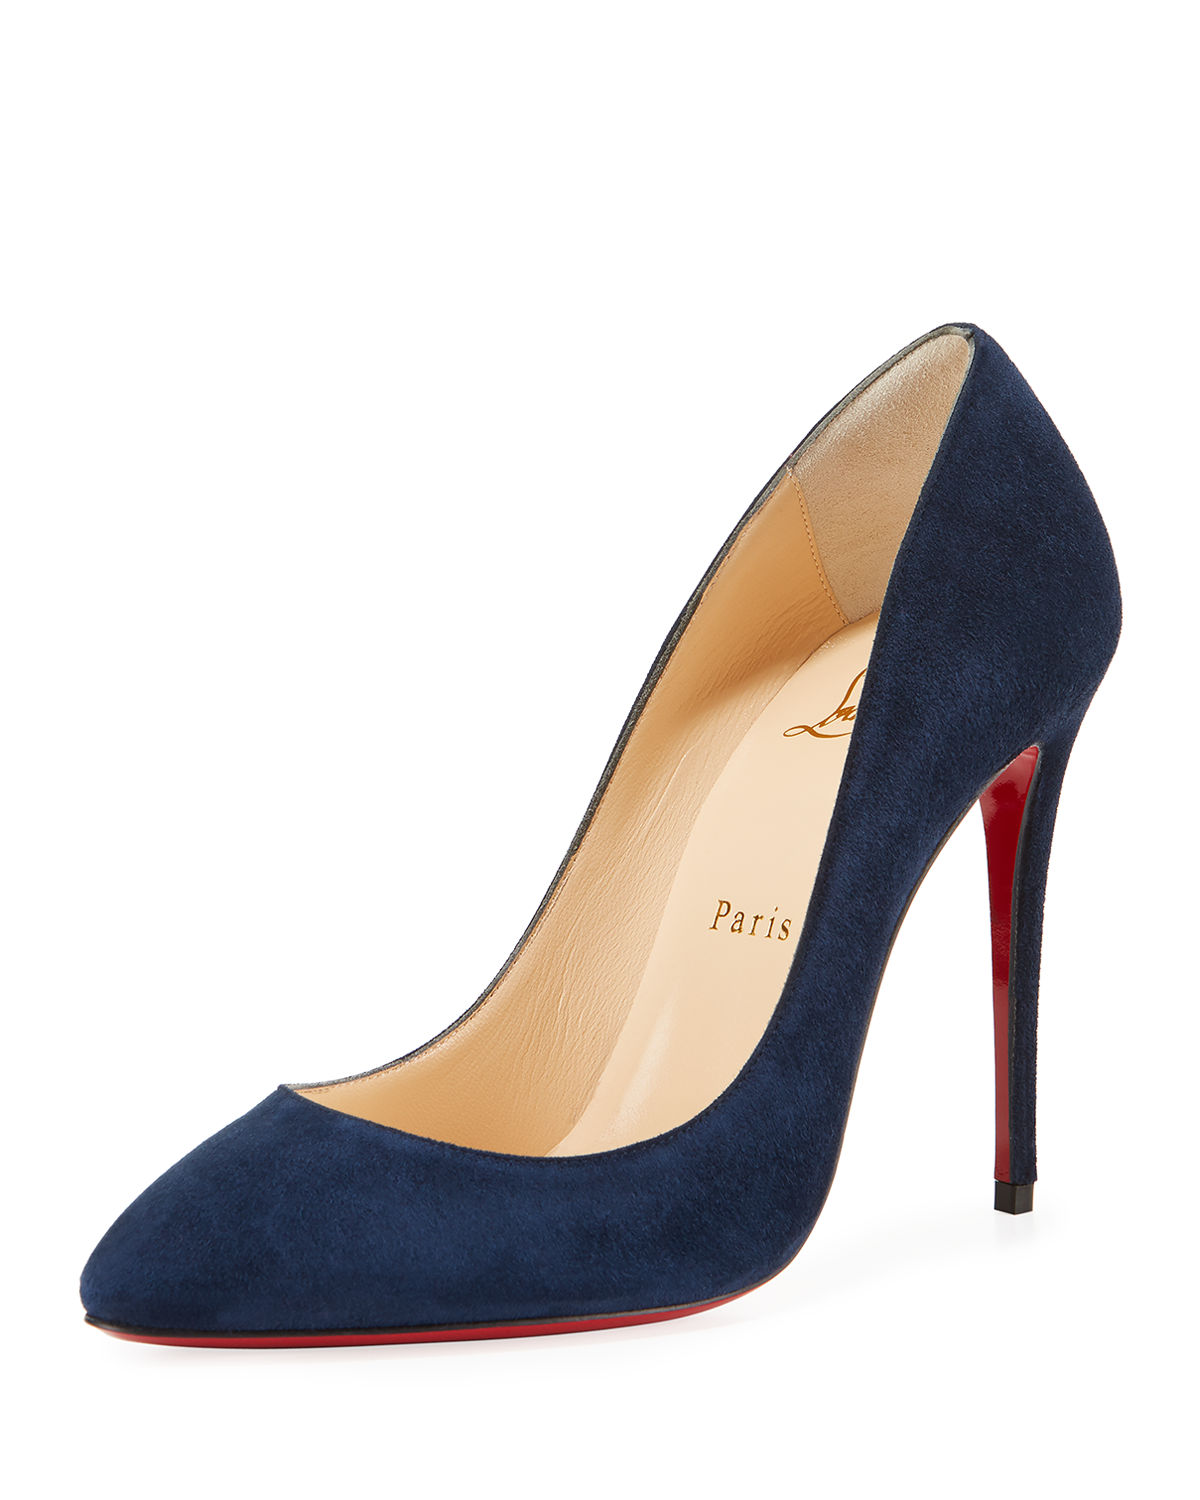 b780264bad18 Christian Louboutin Eloise 100mm Suede Red Sole Pump